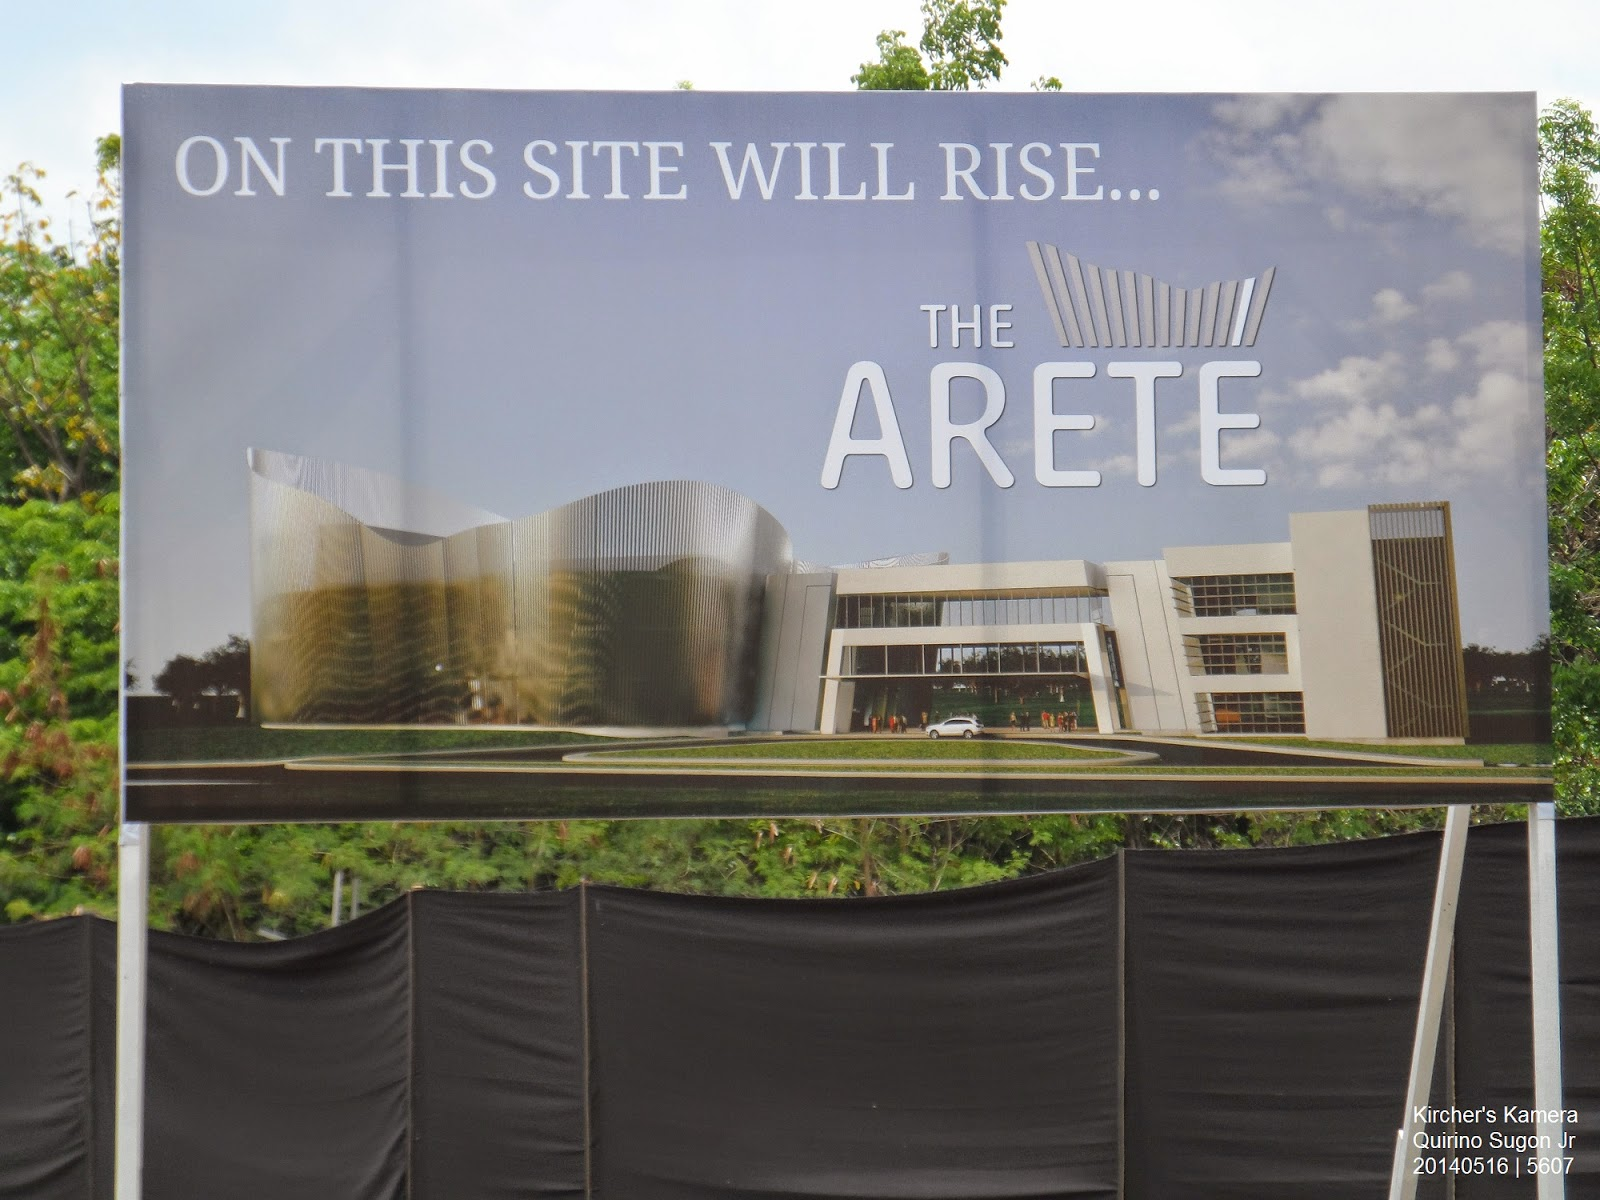 Billboard: On this site will rise the Arete